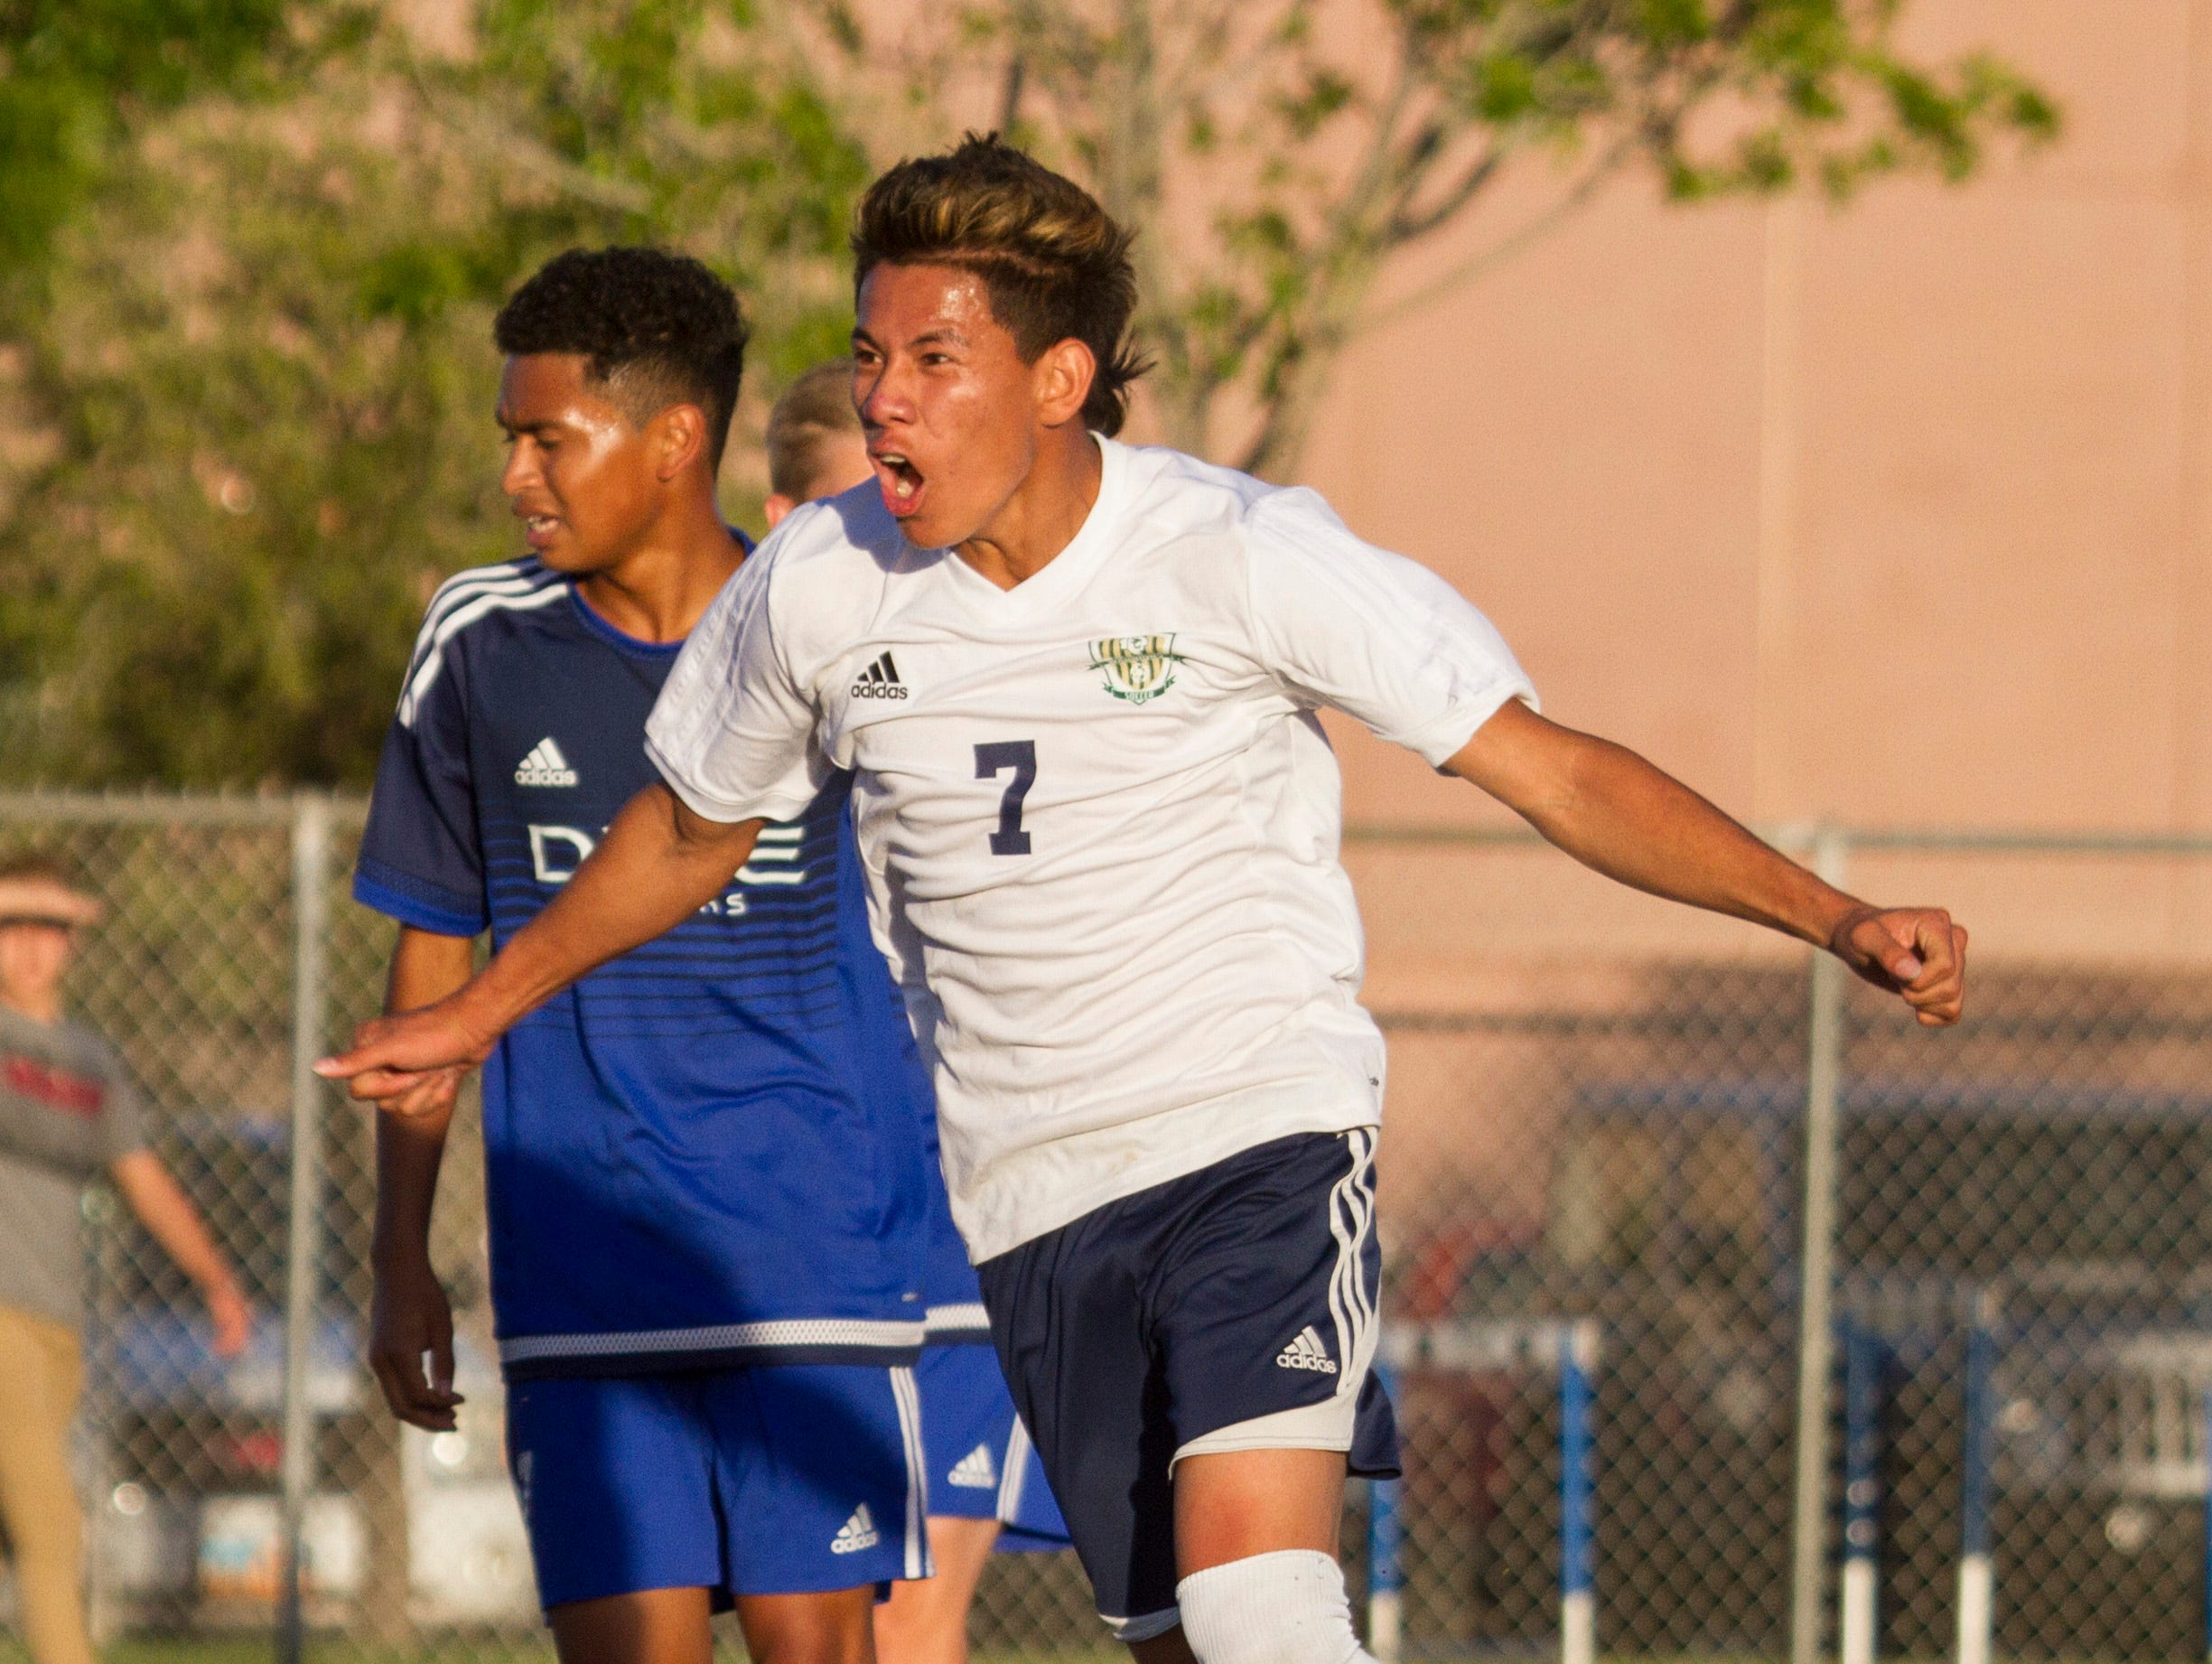 Snow Canyon's Kevin Guevara celebrates scoring the opening goal against Dixie. Tuesday, April 12, 2016.